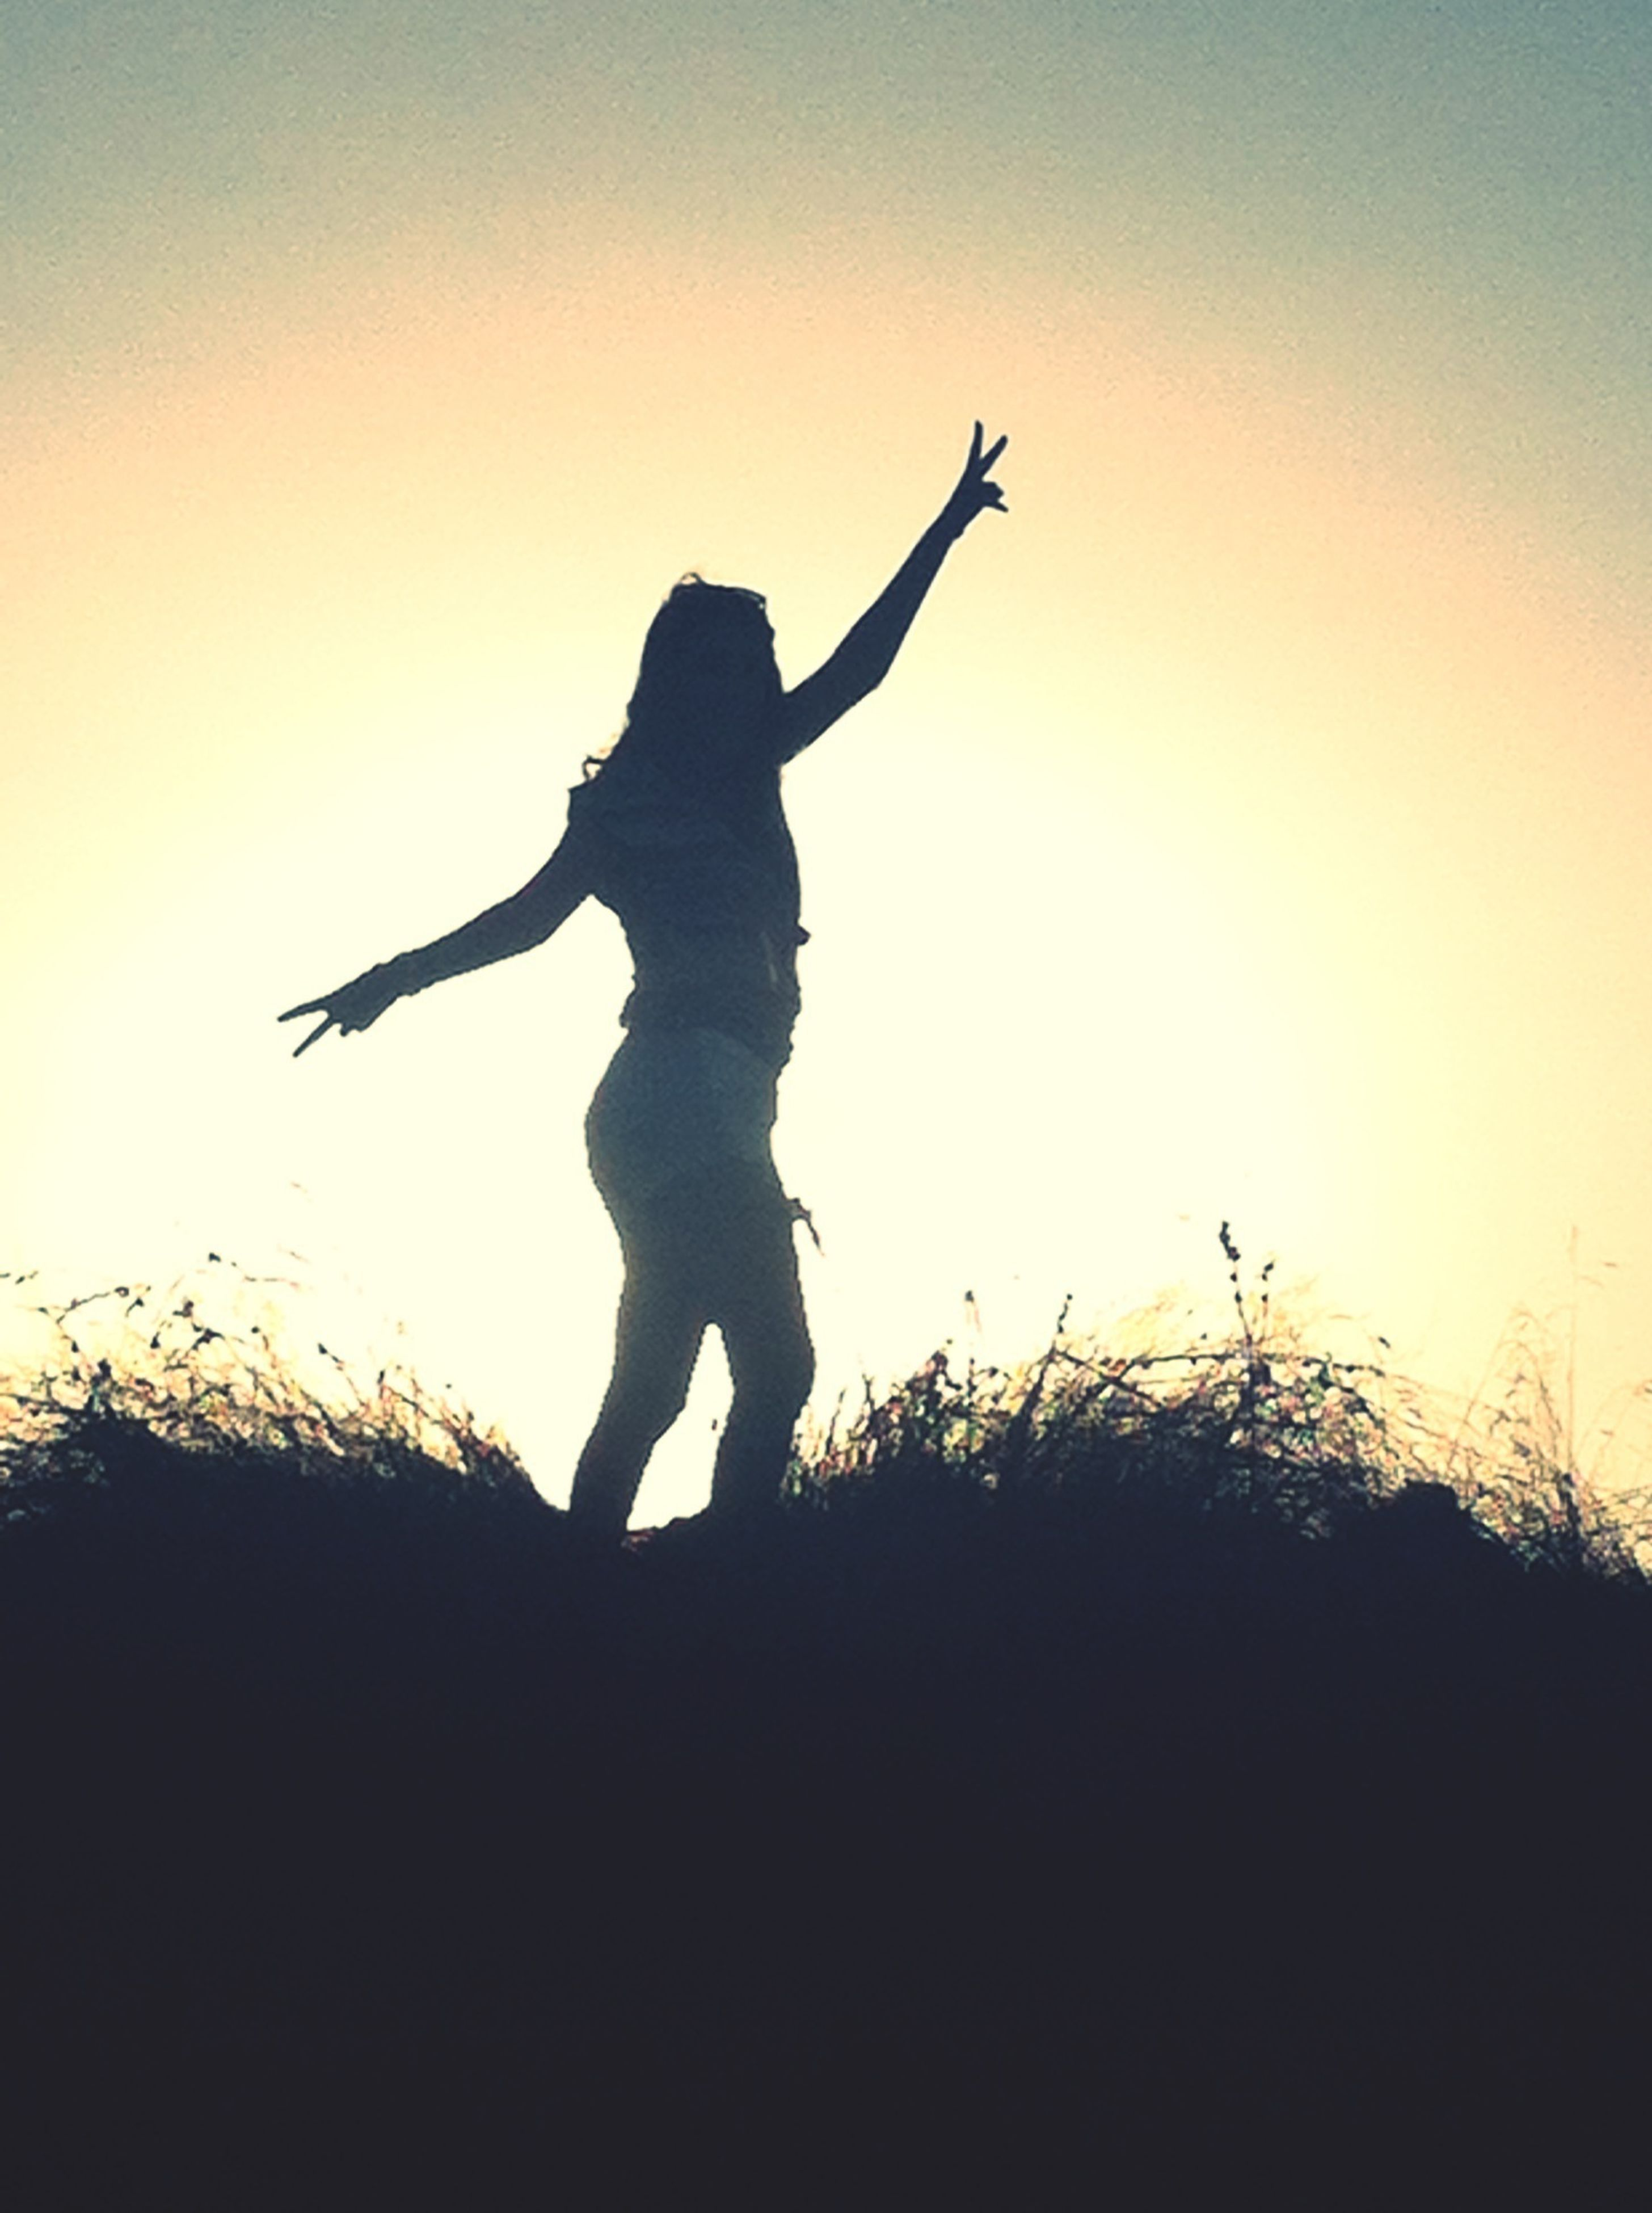 silhouette, sunset, clear sky, copy space, orange color, nature, bird, one person, sky, sun, outdoors, low angle view, full length, beauty in nature, sunlight, animal themes, dusk, outline, field, wildlife